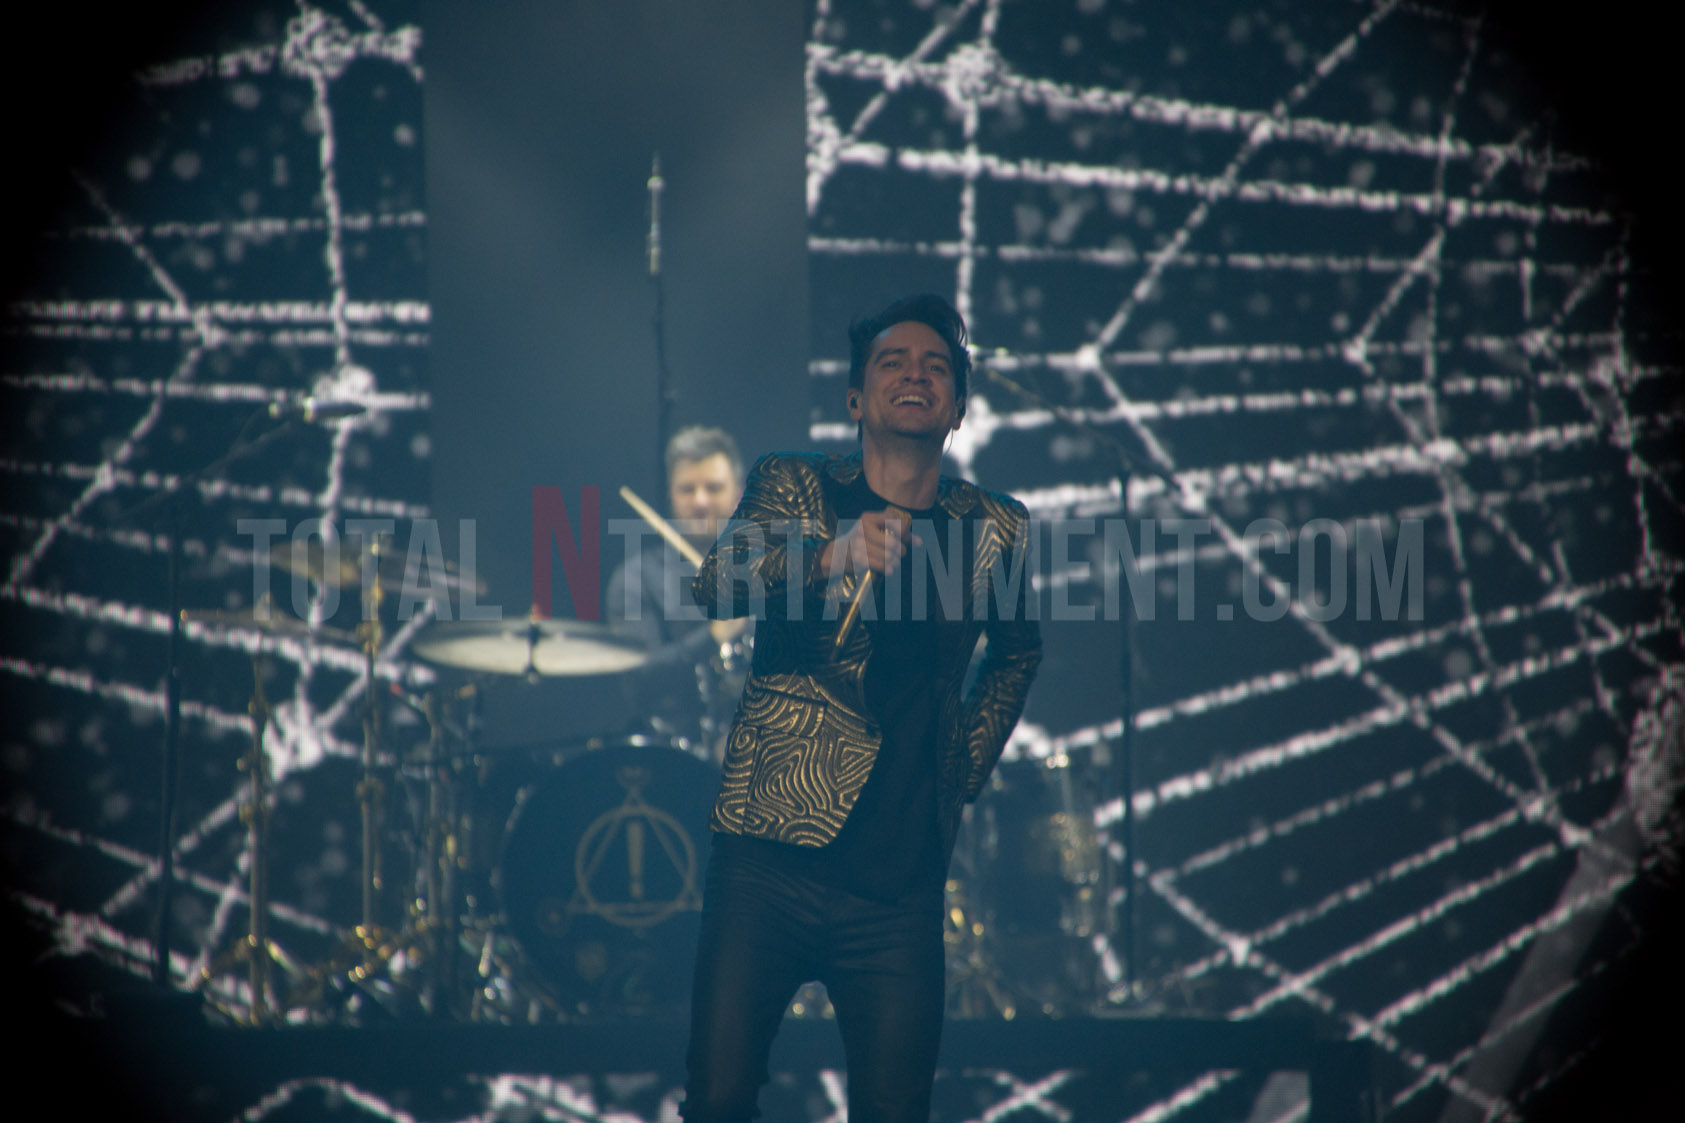 Panic! At The Disco put on a spectacular show in Manchester -